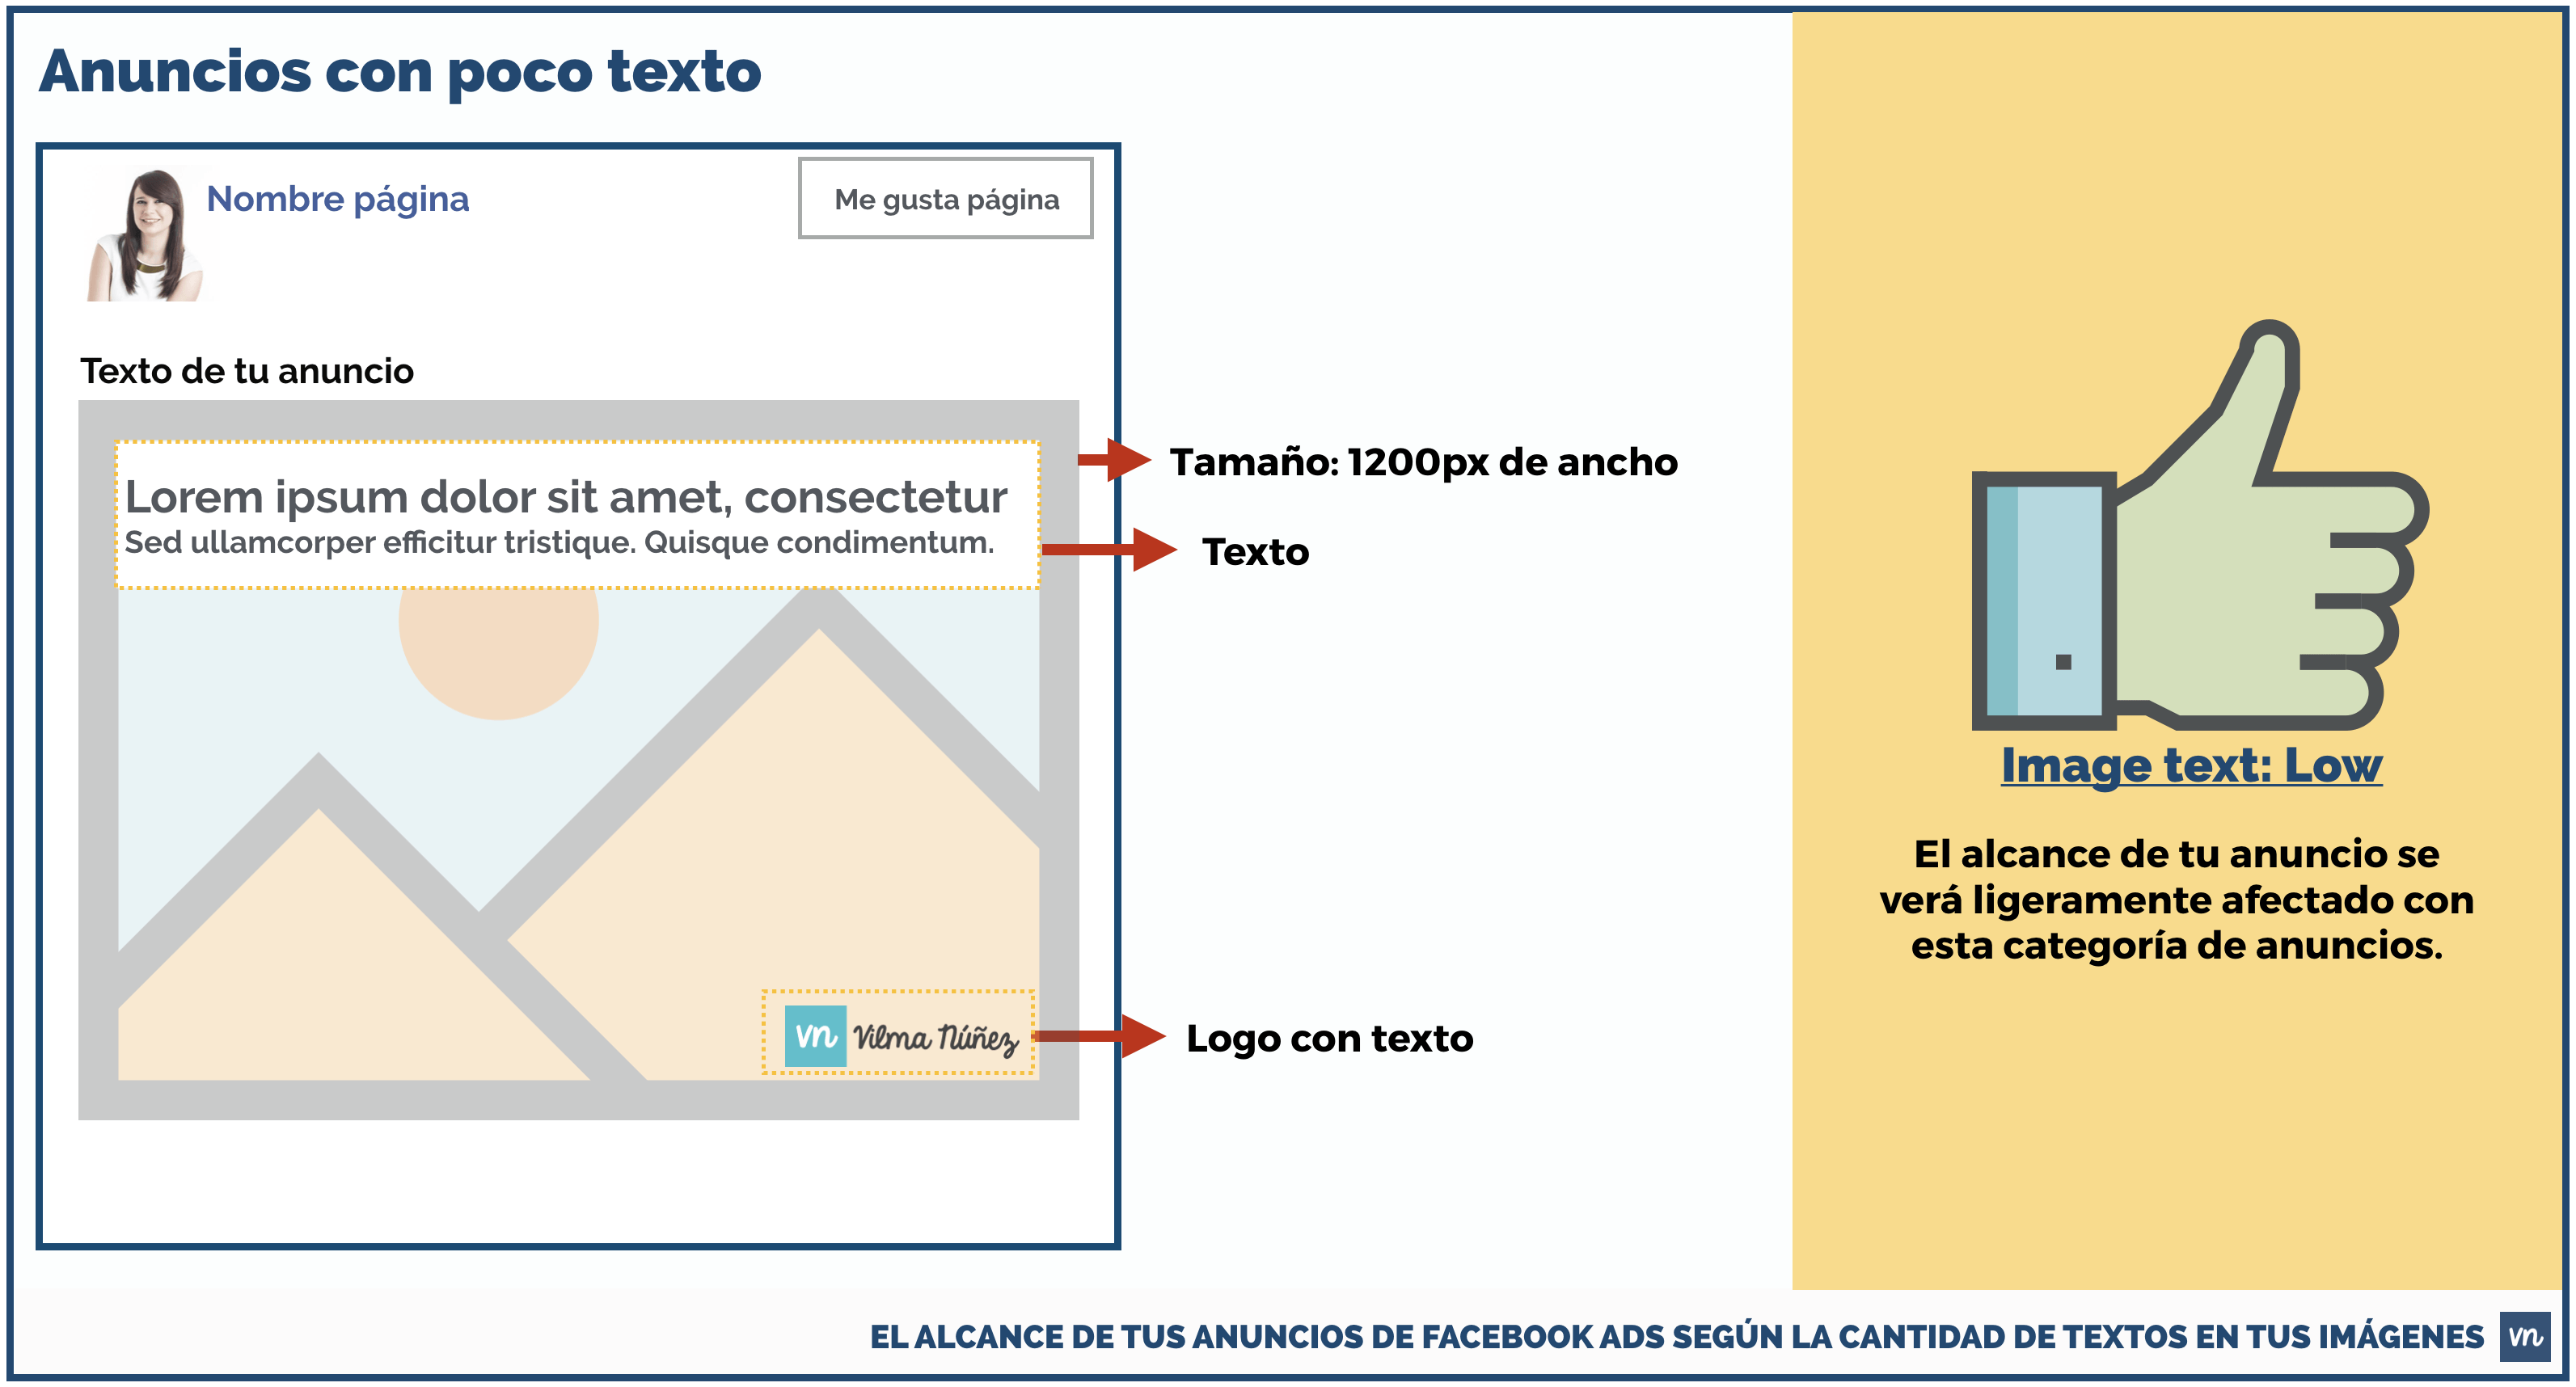 anuncios con poco texto low text facebook ads